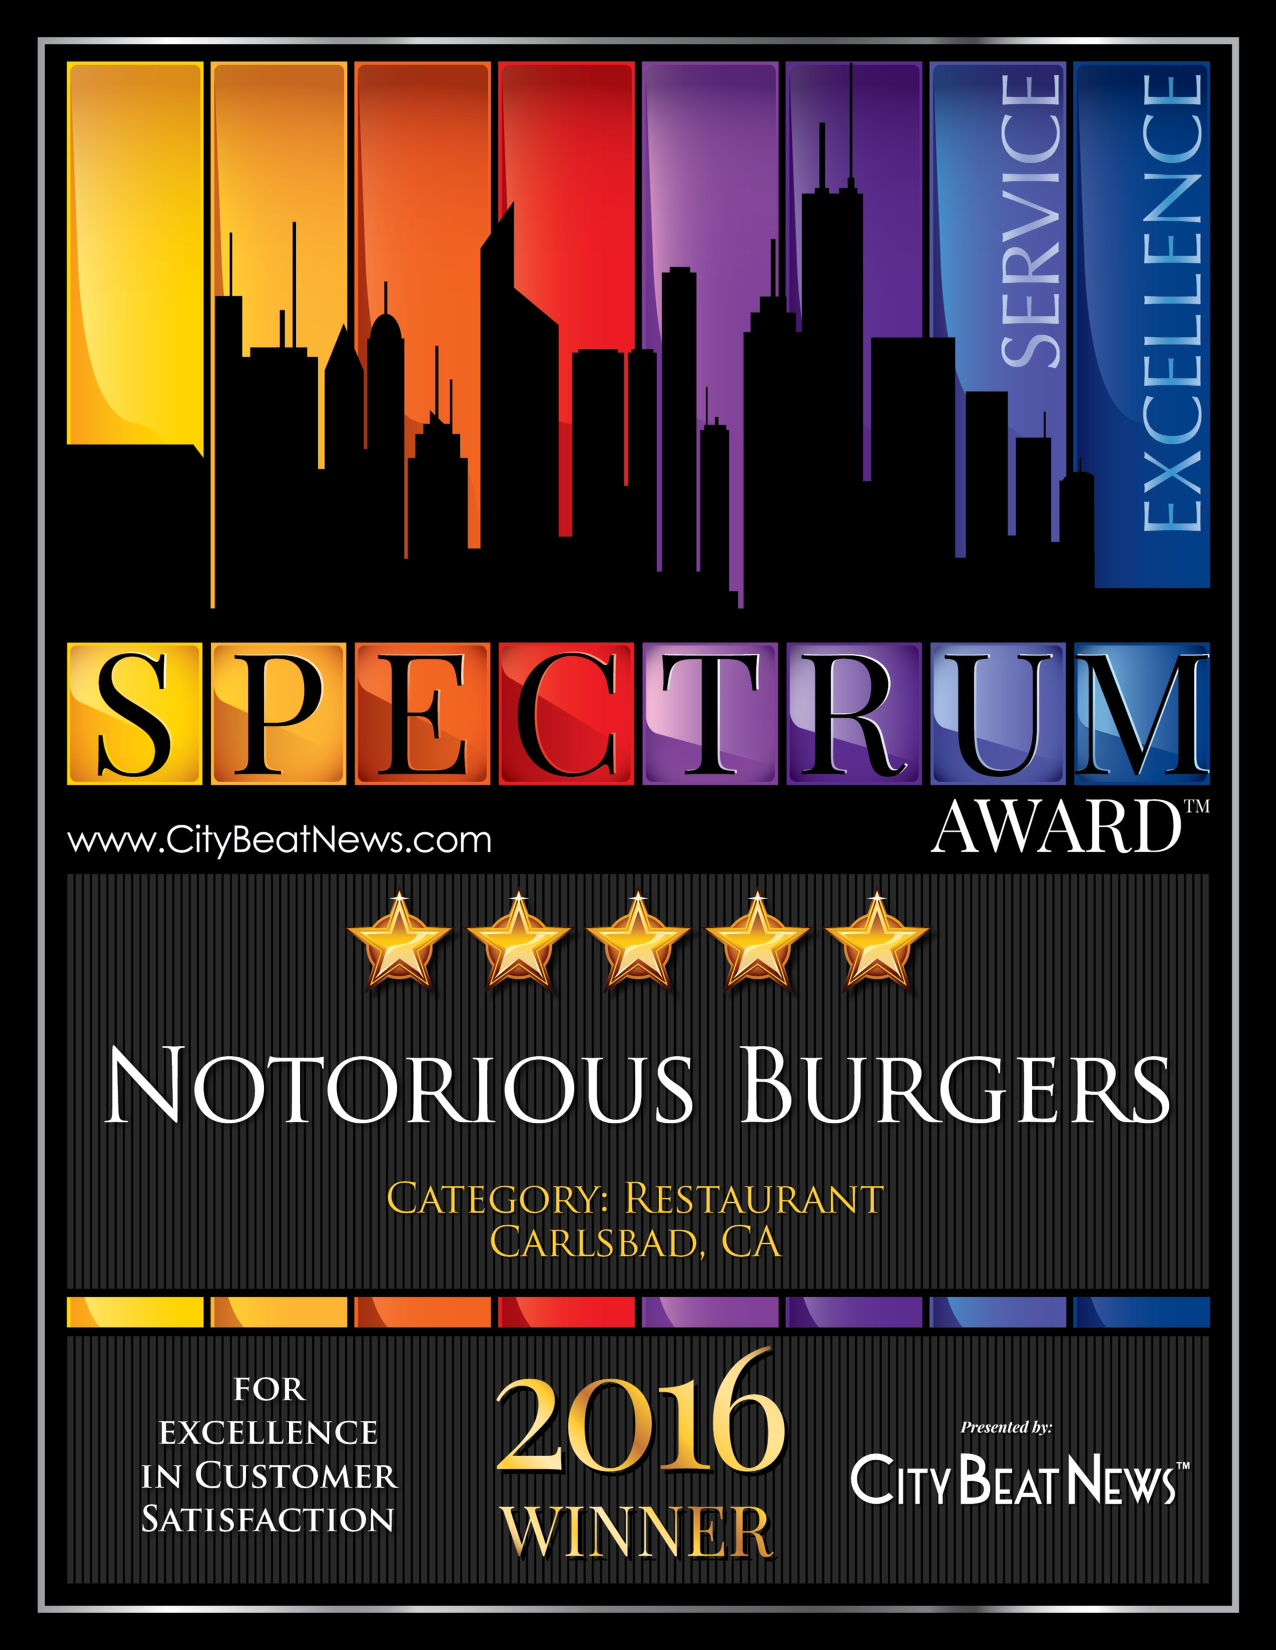 Spectrum_Awards